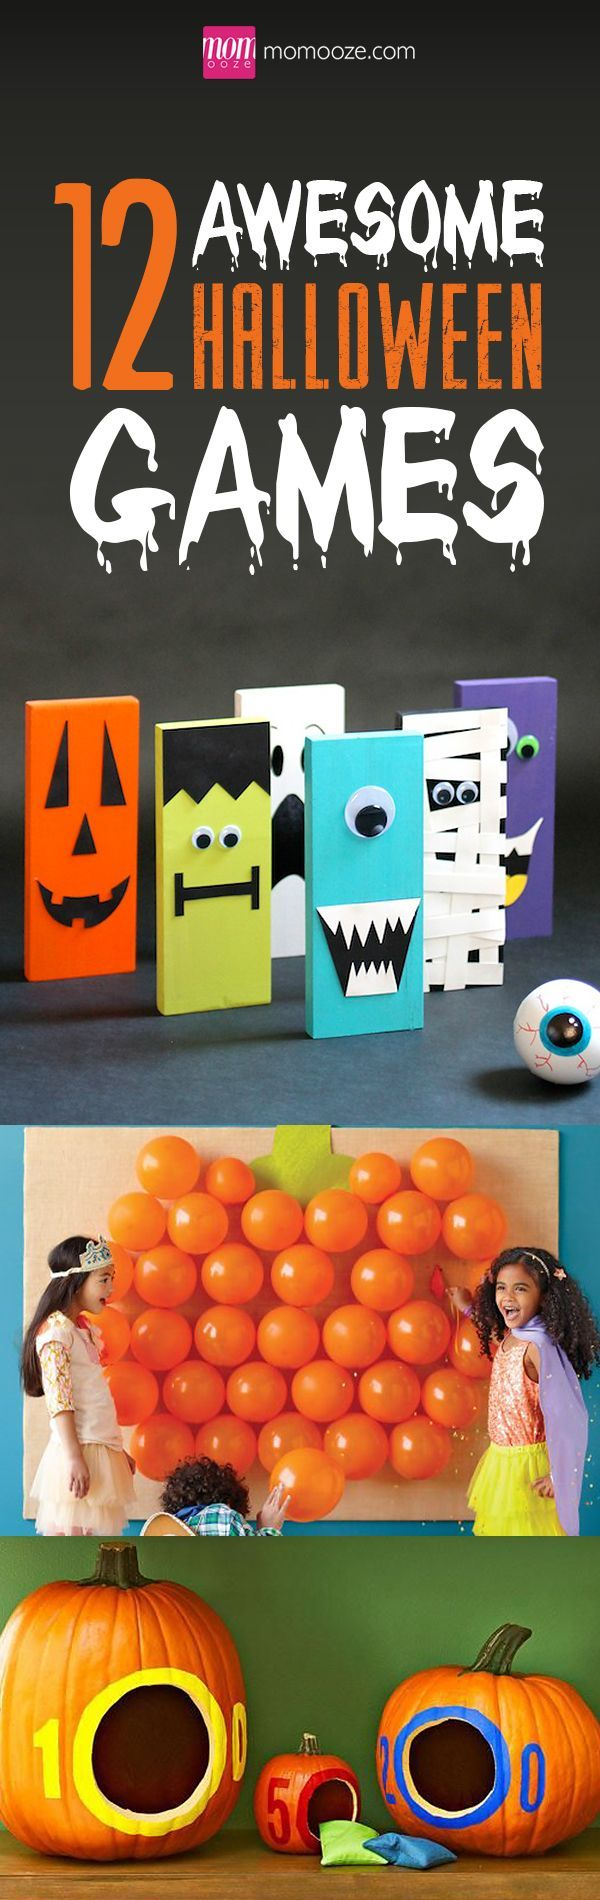 12 Awesome Halloween Games for Your Hyped Up Kids